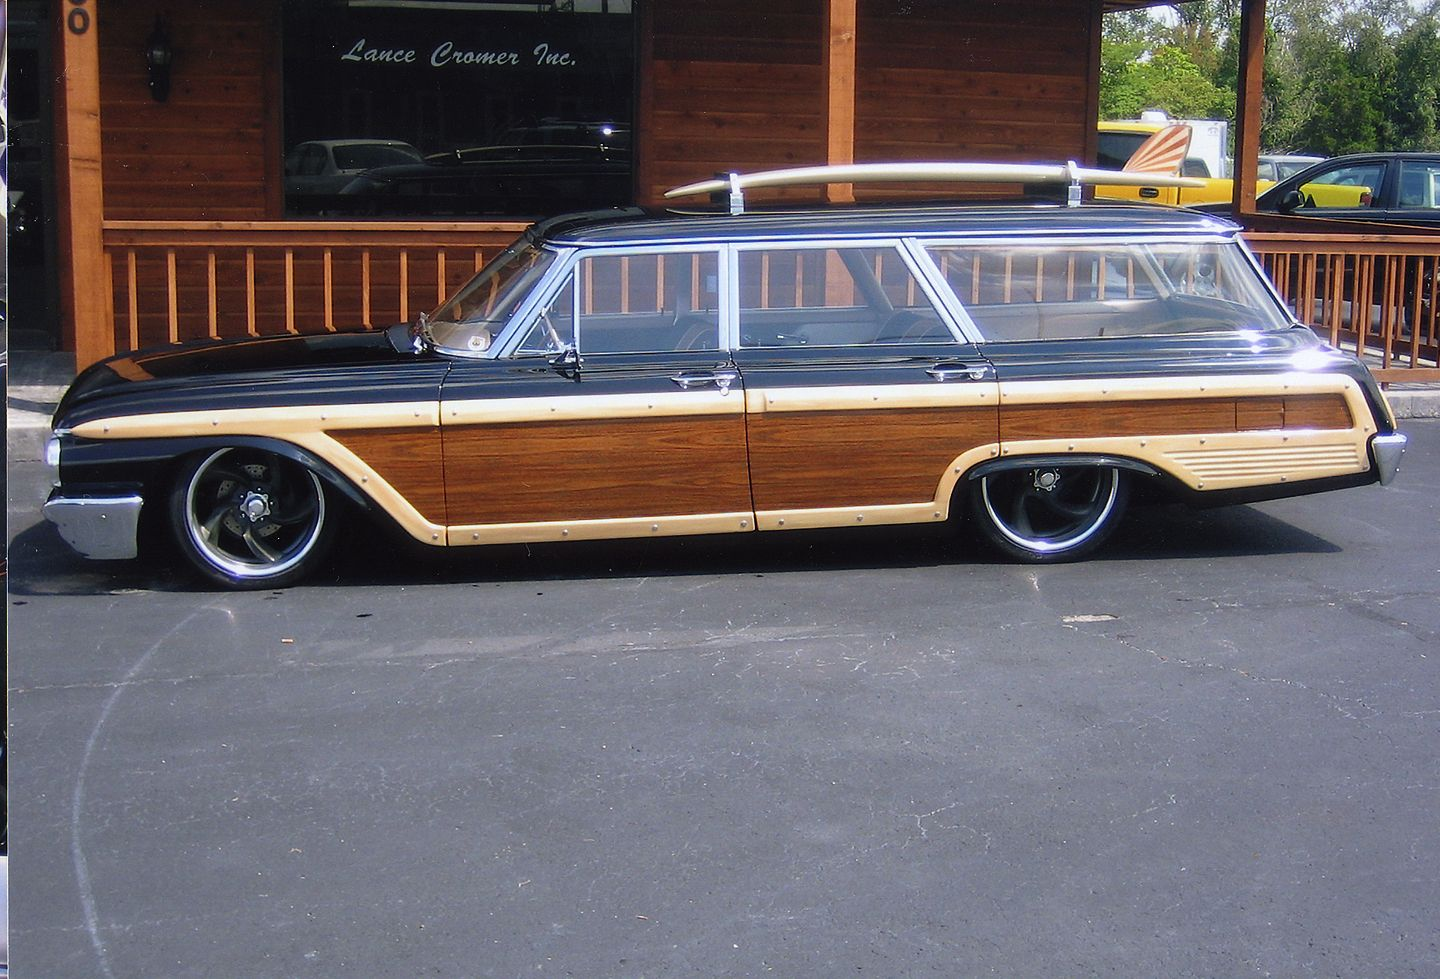 Dorable Old Station Wagons For Sale Image Collection - Classic Cars ...